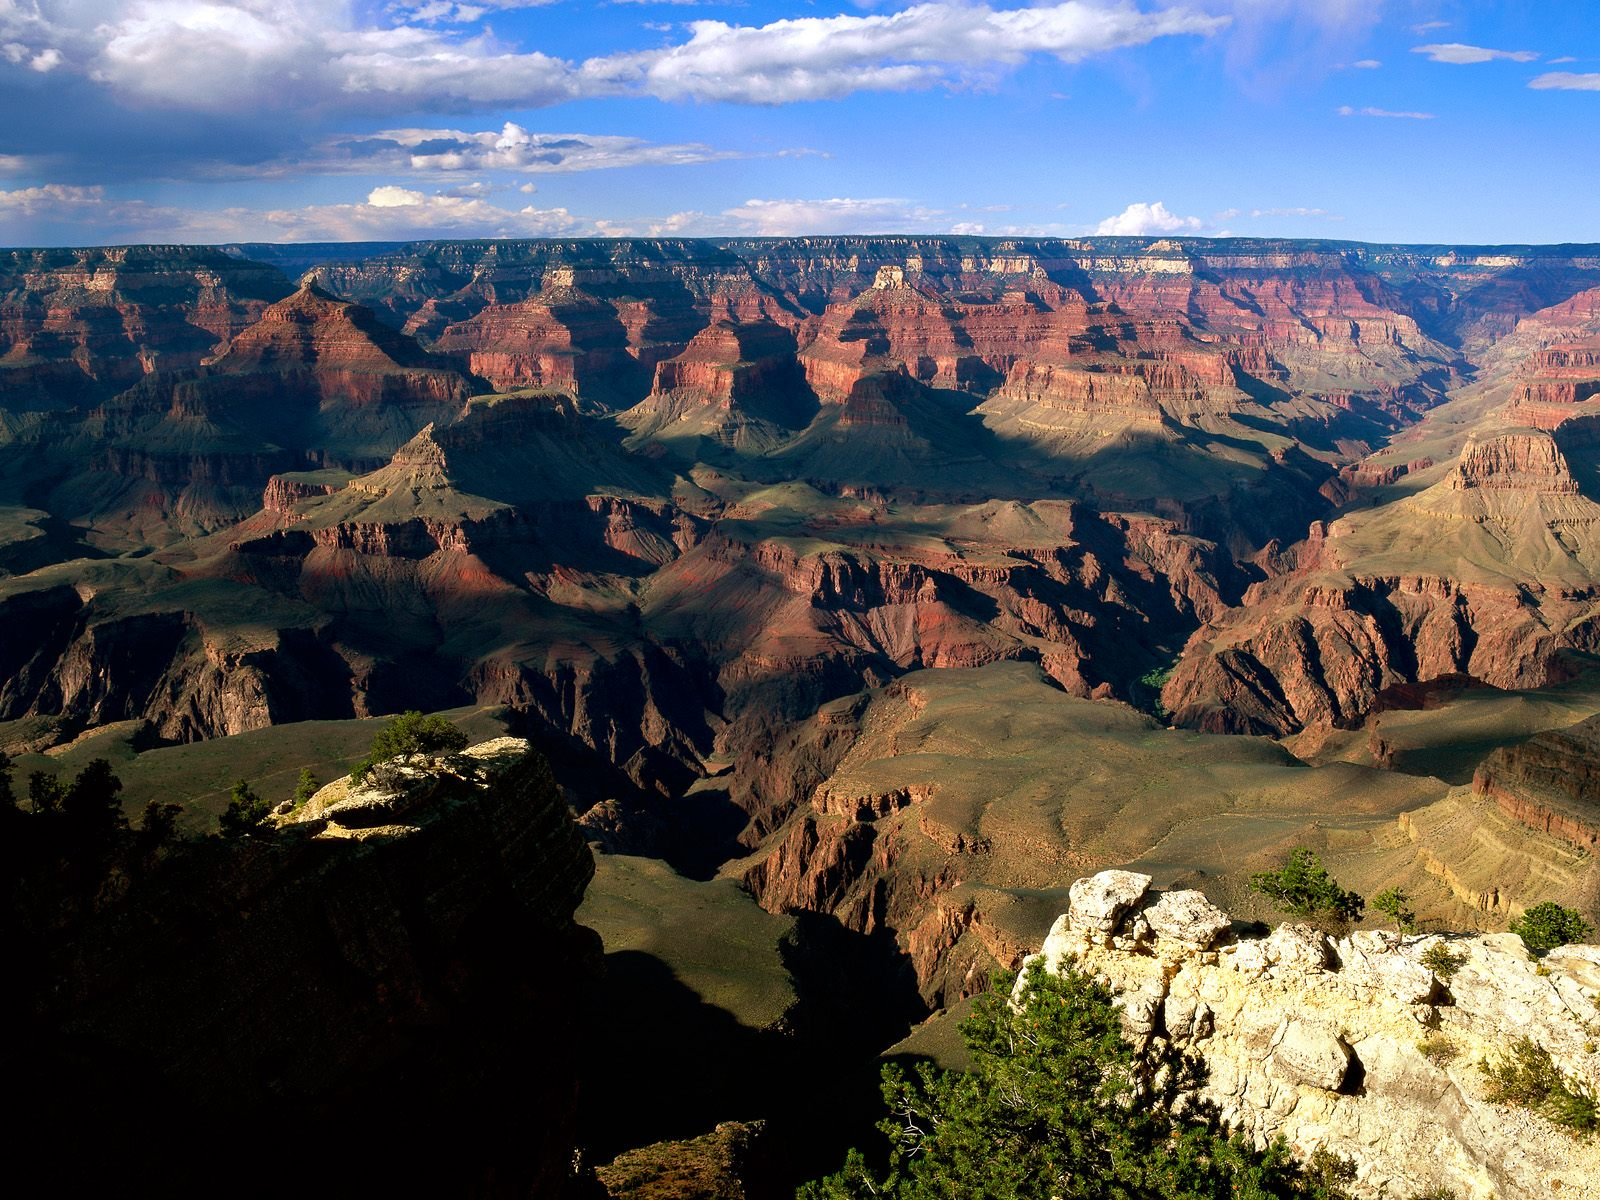 Grand Canyon National Park 4873.96 Kb